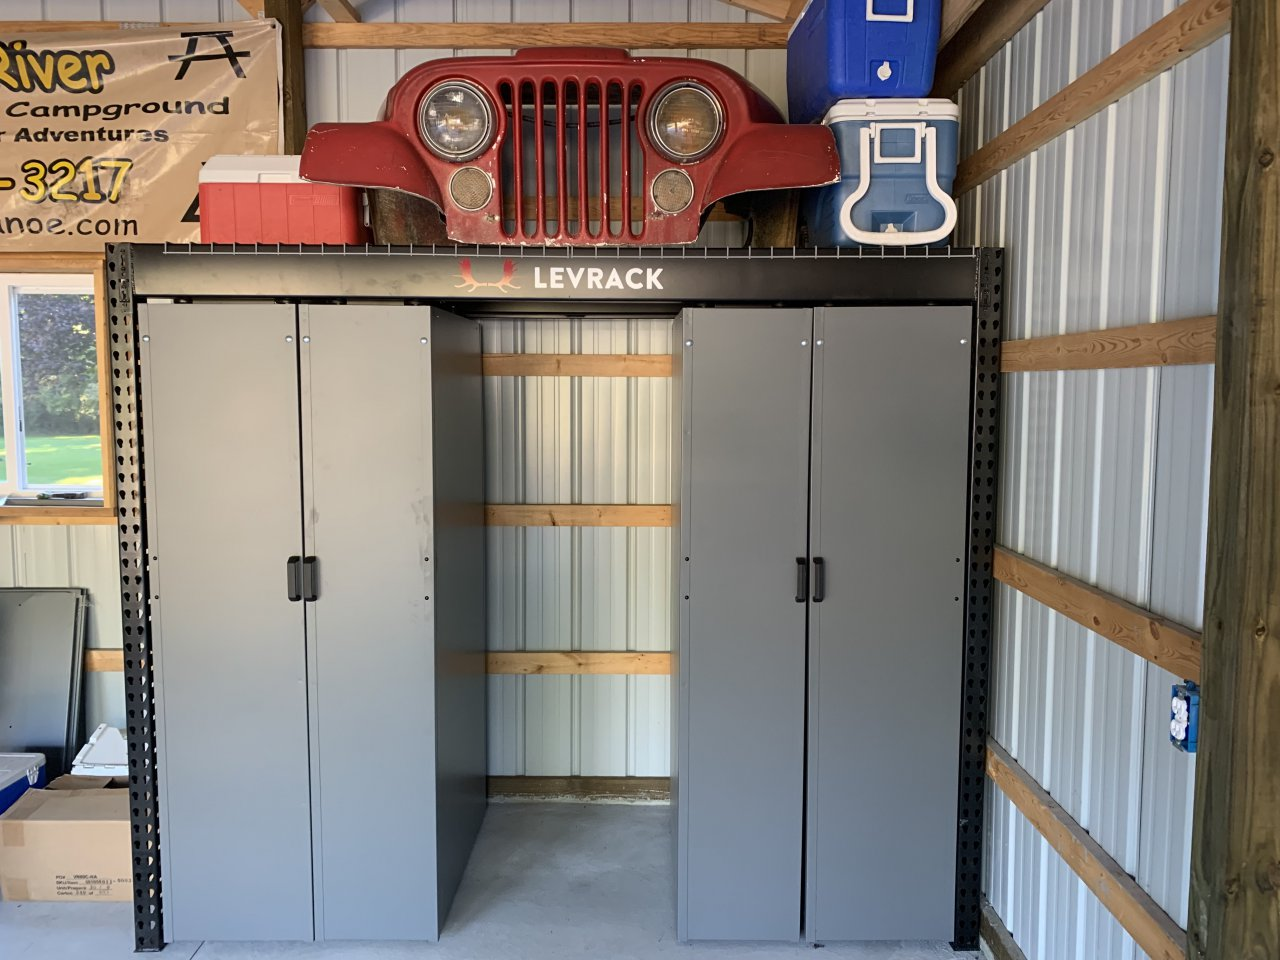 storage, There's never enough space, but Levrack storage system can help, ClassicCars.com Journal